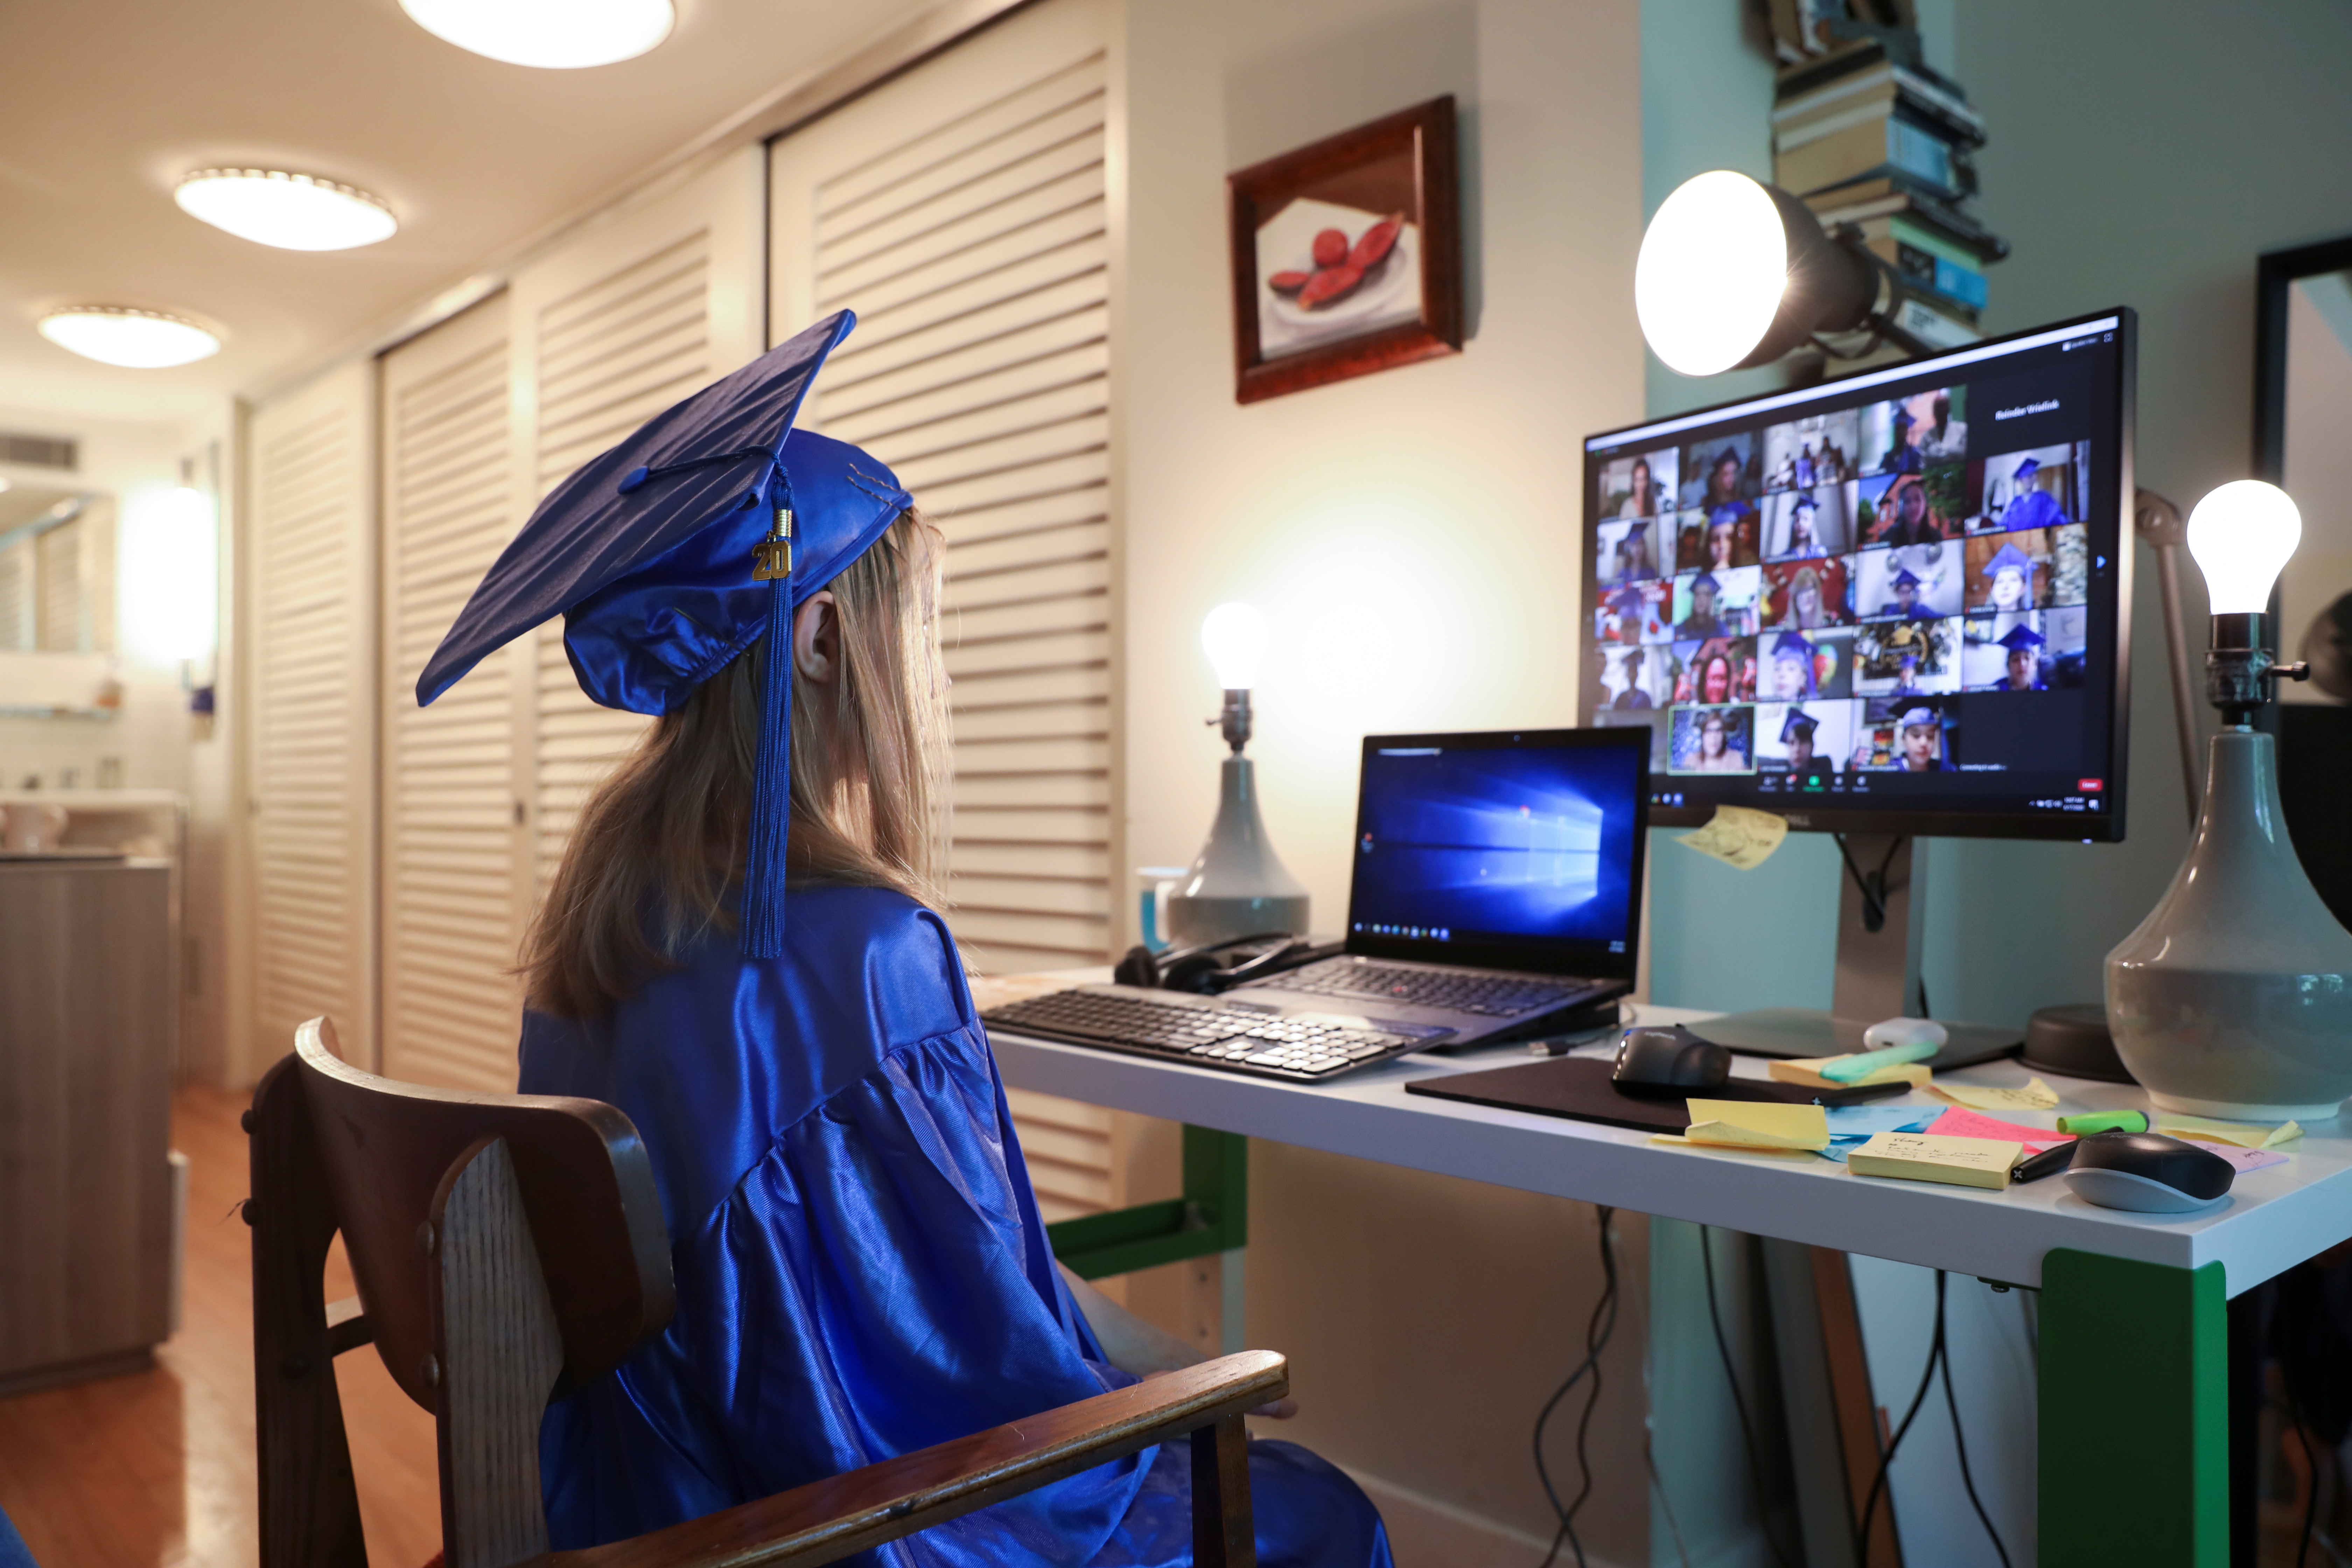 Lydia Hassebroek looks at a screen of her graduating class during a digital graduation ceremony at home during the outbreak of coronavirus disease (COVID-19) in Brooklyn, New York, U.S., June 17, 2020. REUTERS/Caitlin Ochs - RC29BH9KIFP0